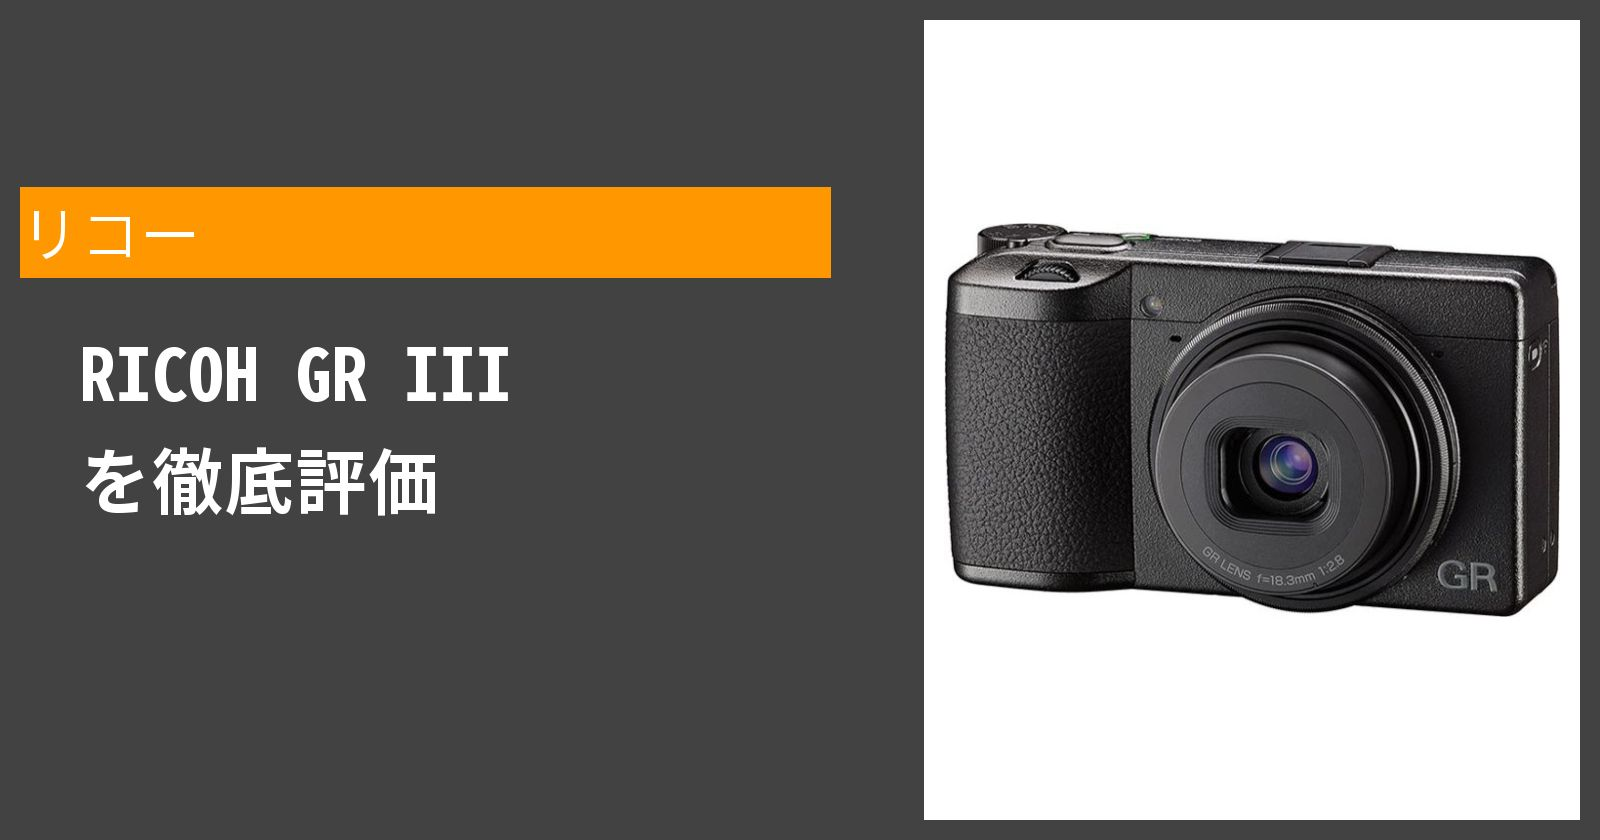 RICOH GR IIIを徹底評価